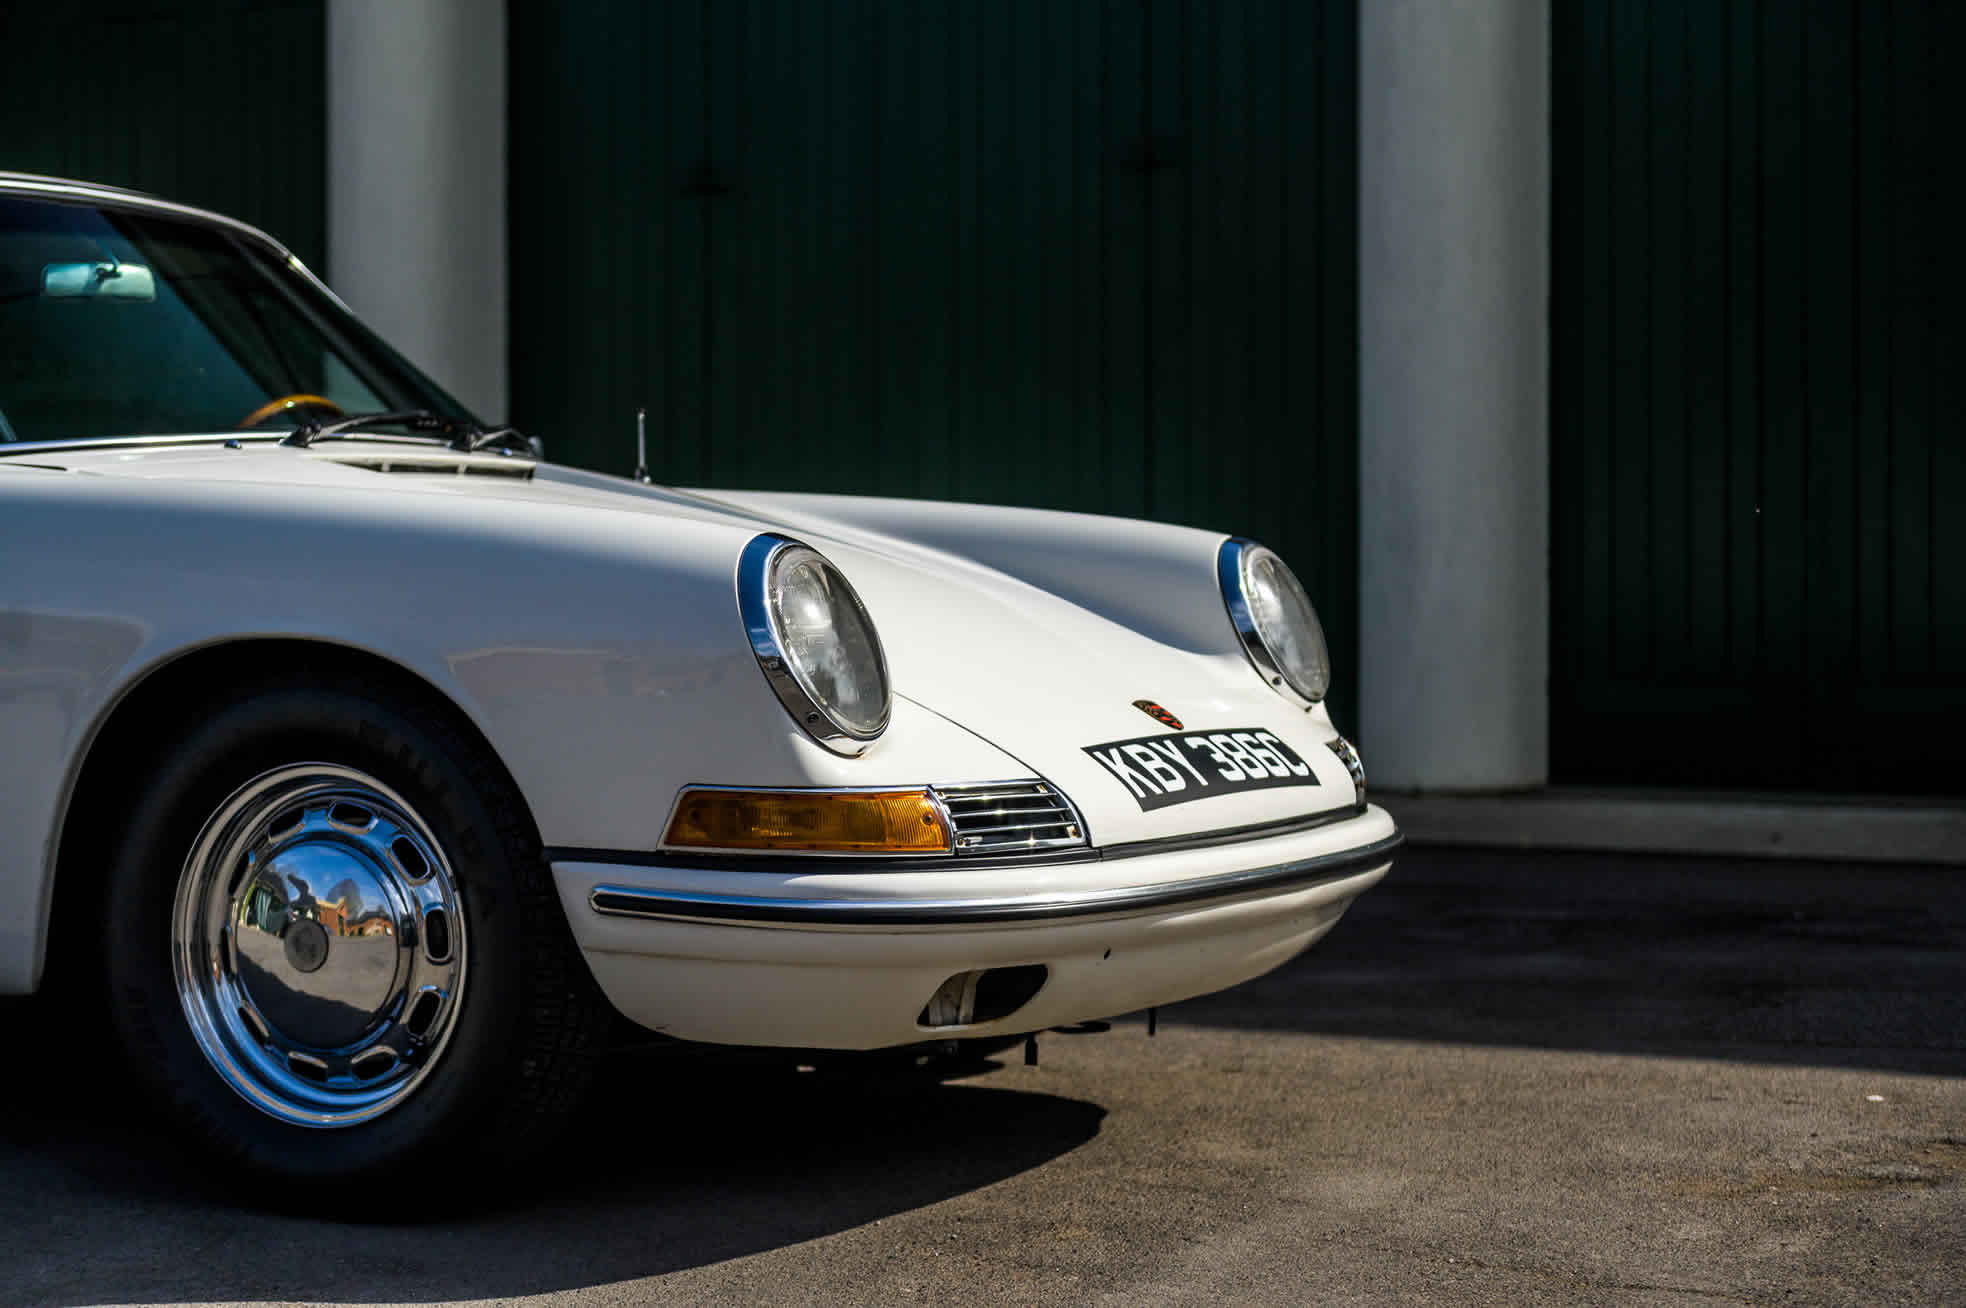 For Sale, 1965 Porsche 911, sports purpose front end